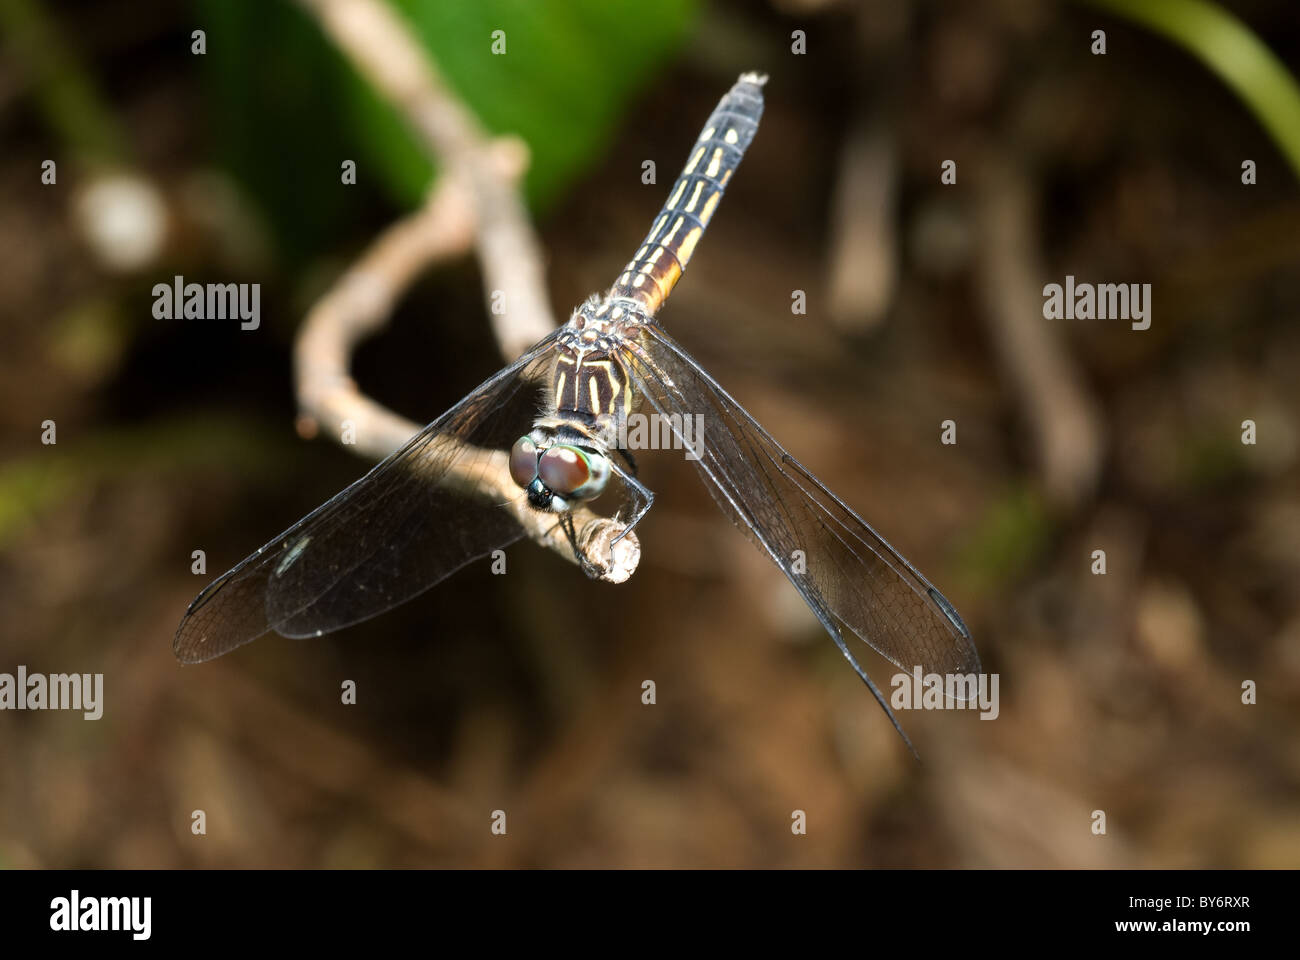 Dragonflies on branch, Female Blue Dasher - Stock Image